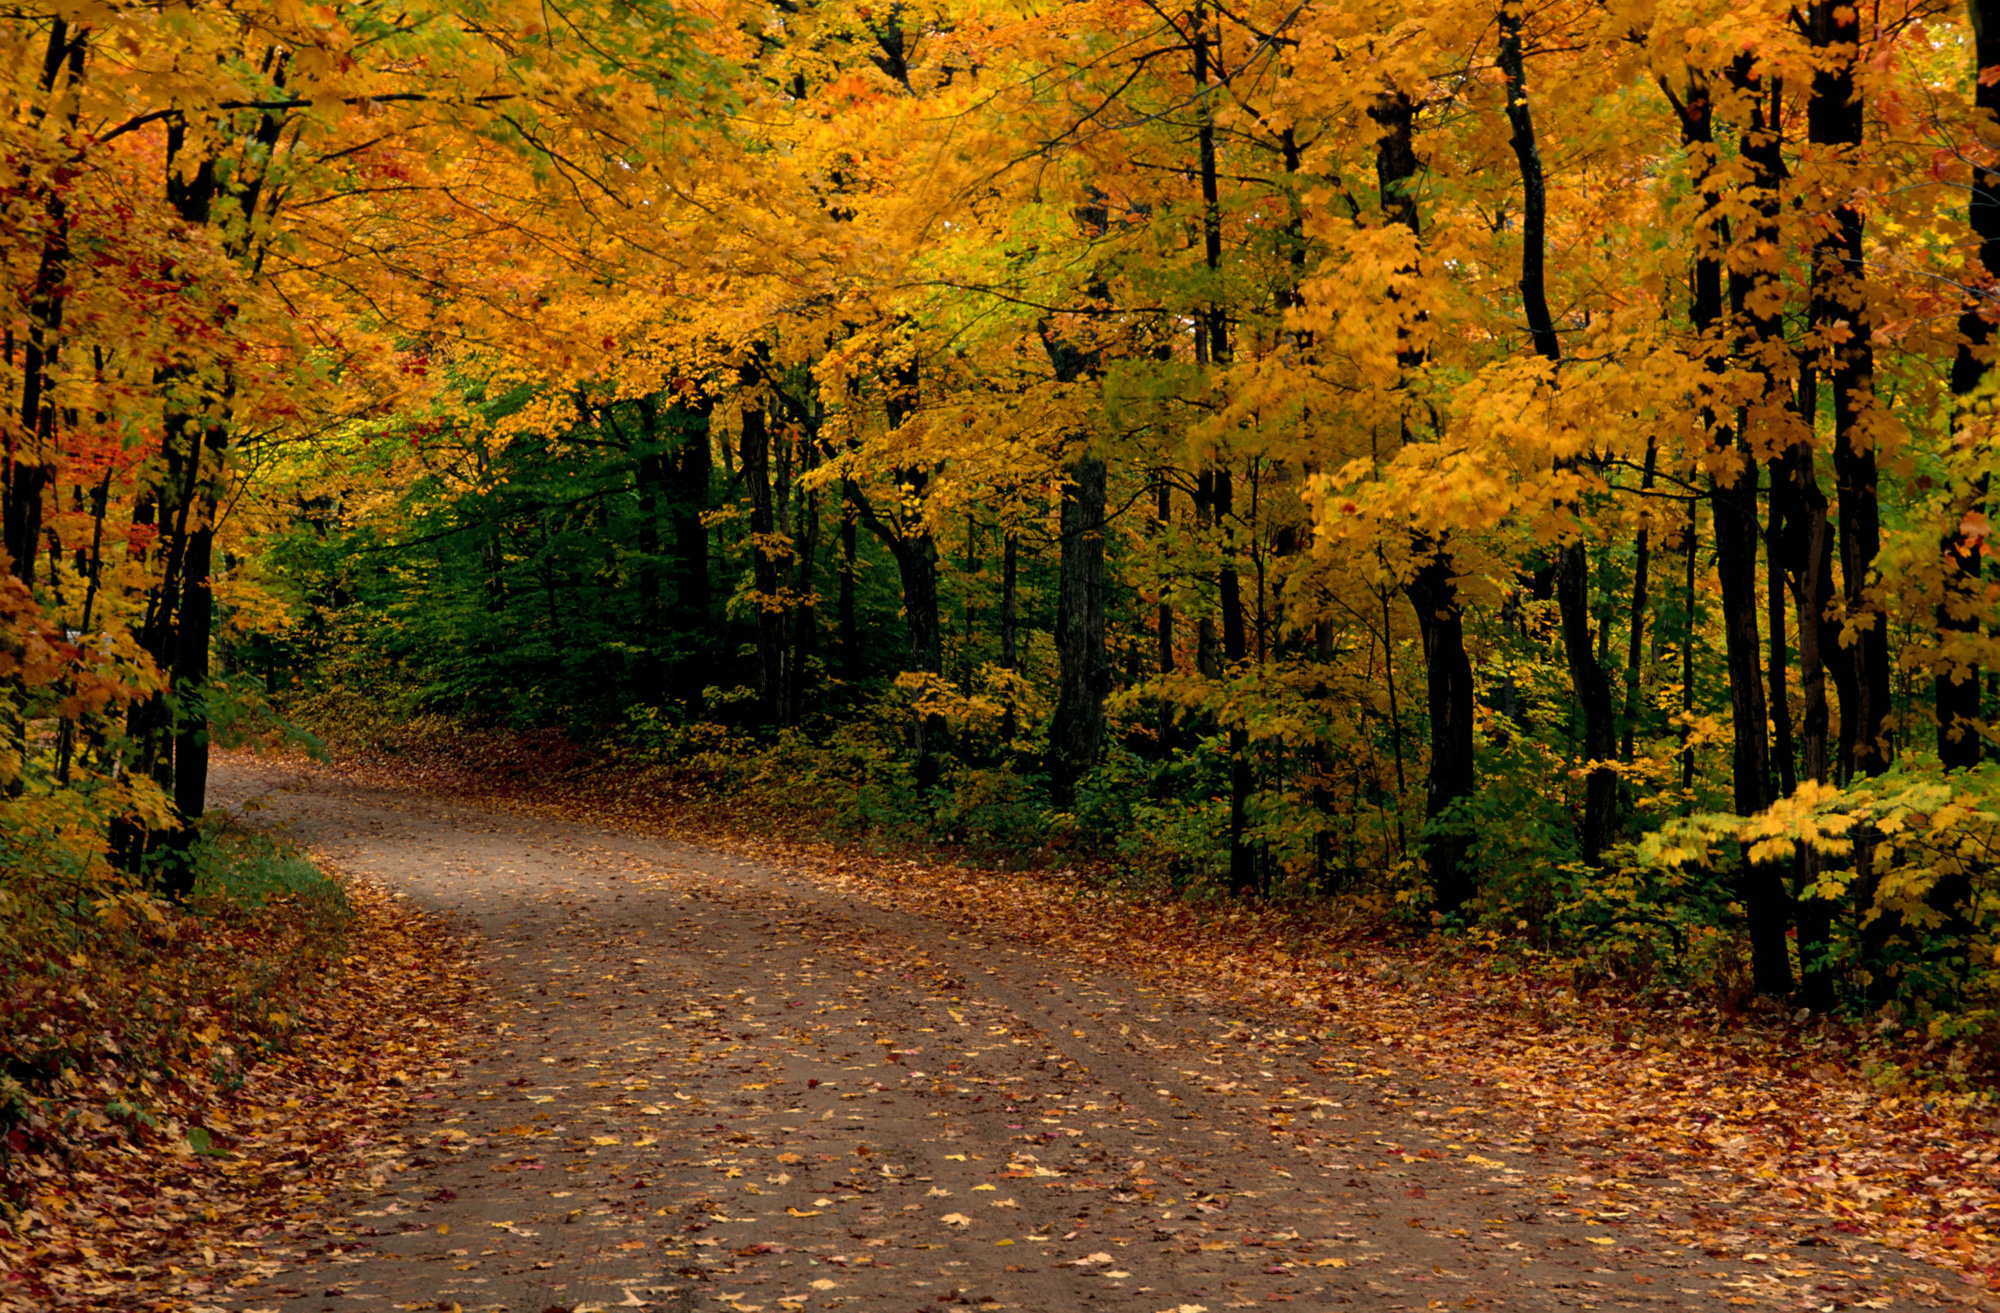 Fall Season Driving Safety Tips from Cooper Tire | AskPatty.com